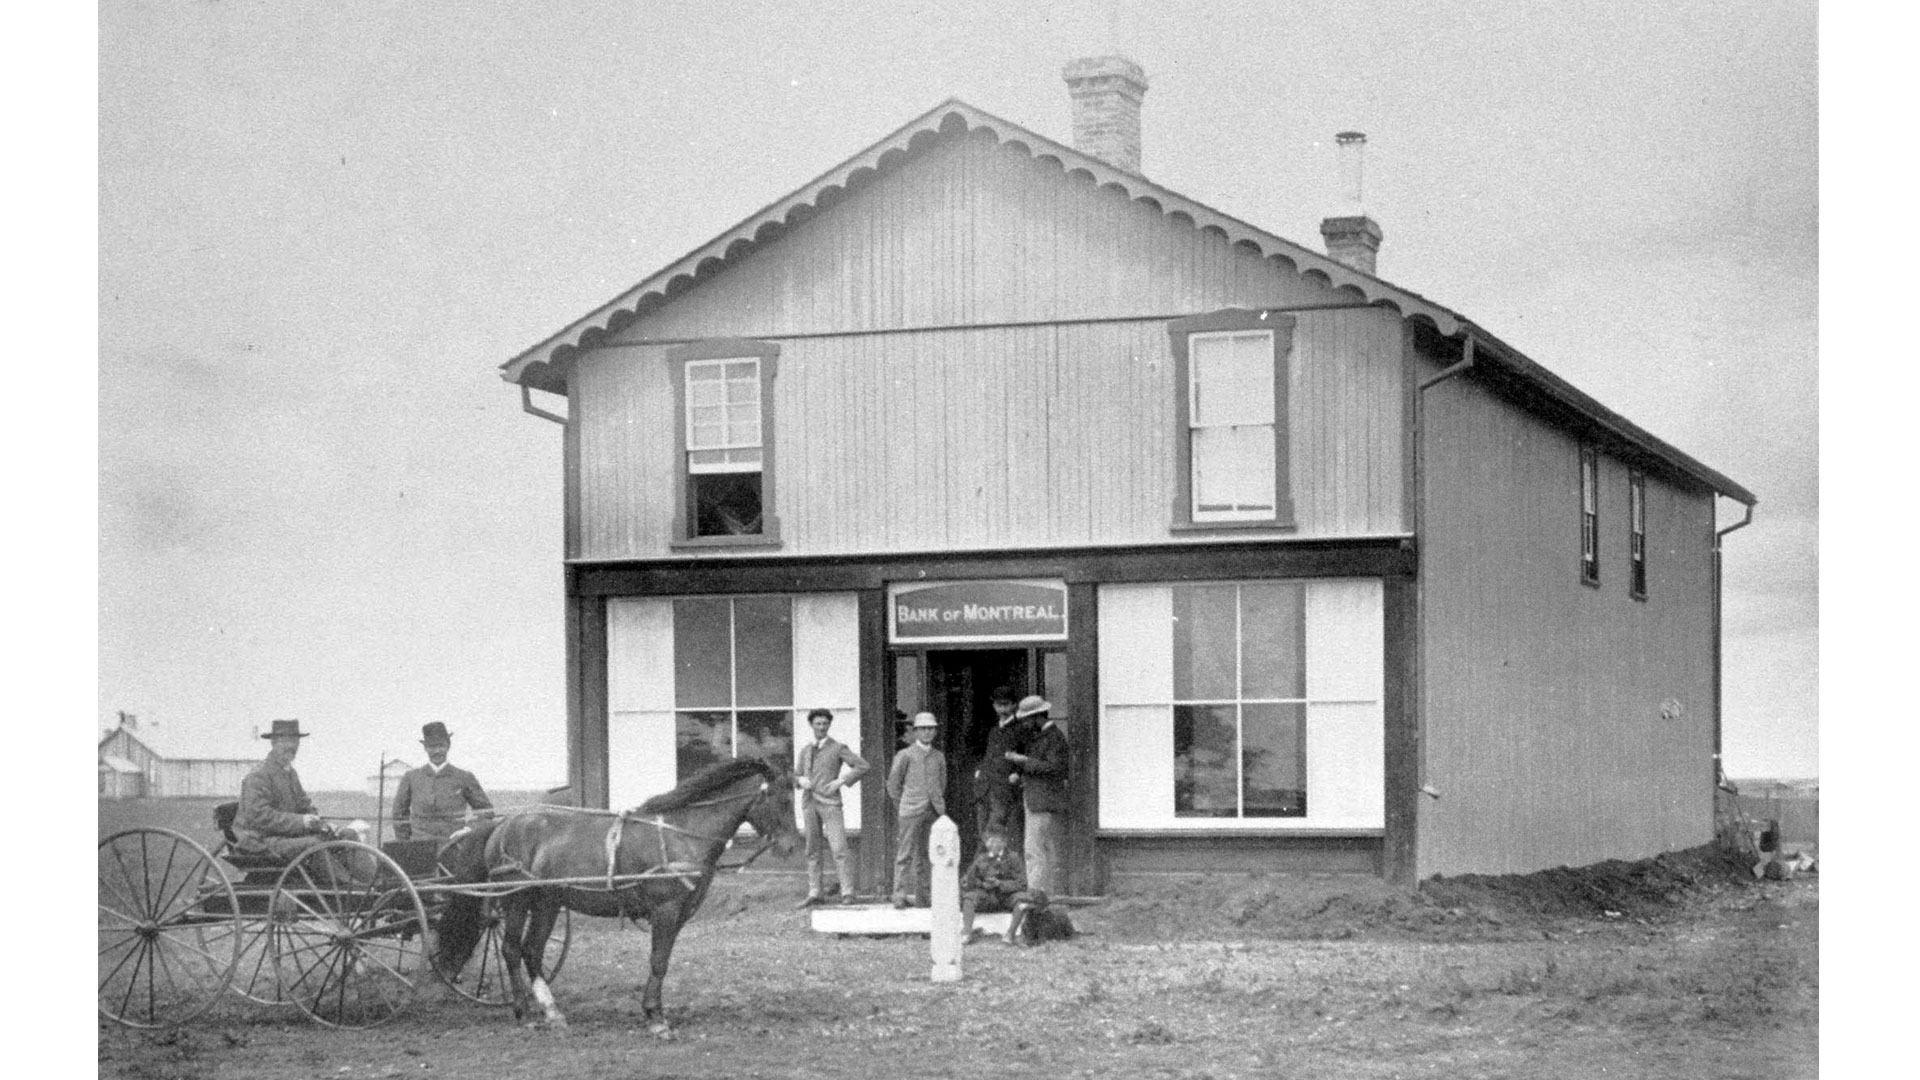 The original Regina branch, 1884, with staff and customers standing on the porch.